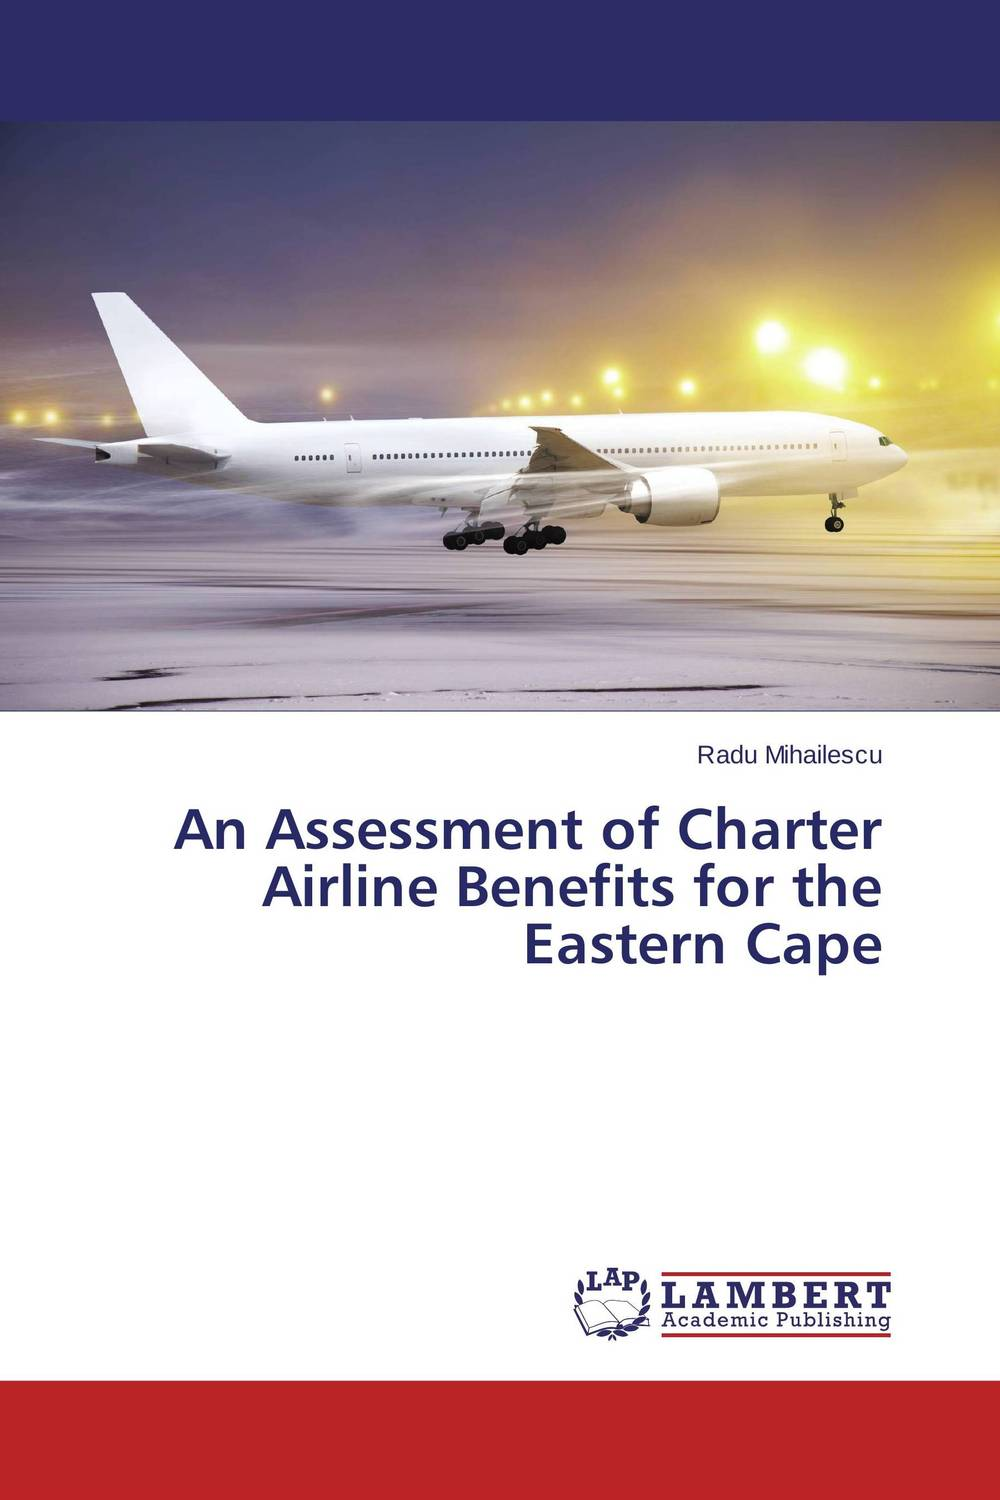 An Assessment of Charter Airline Benefits for the Eastern Cape